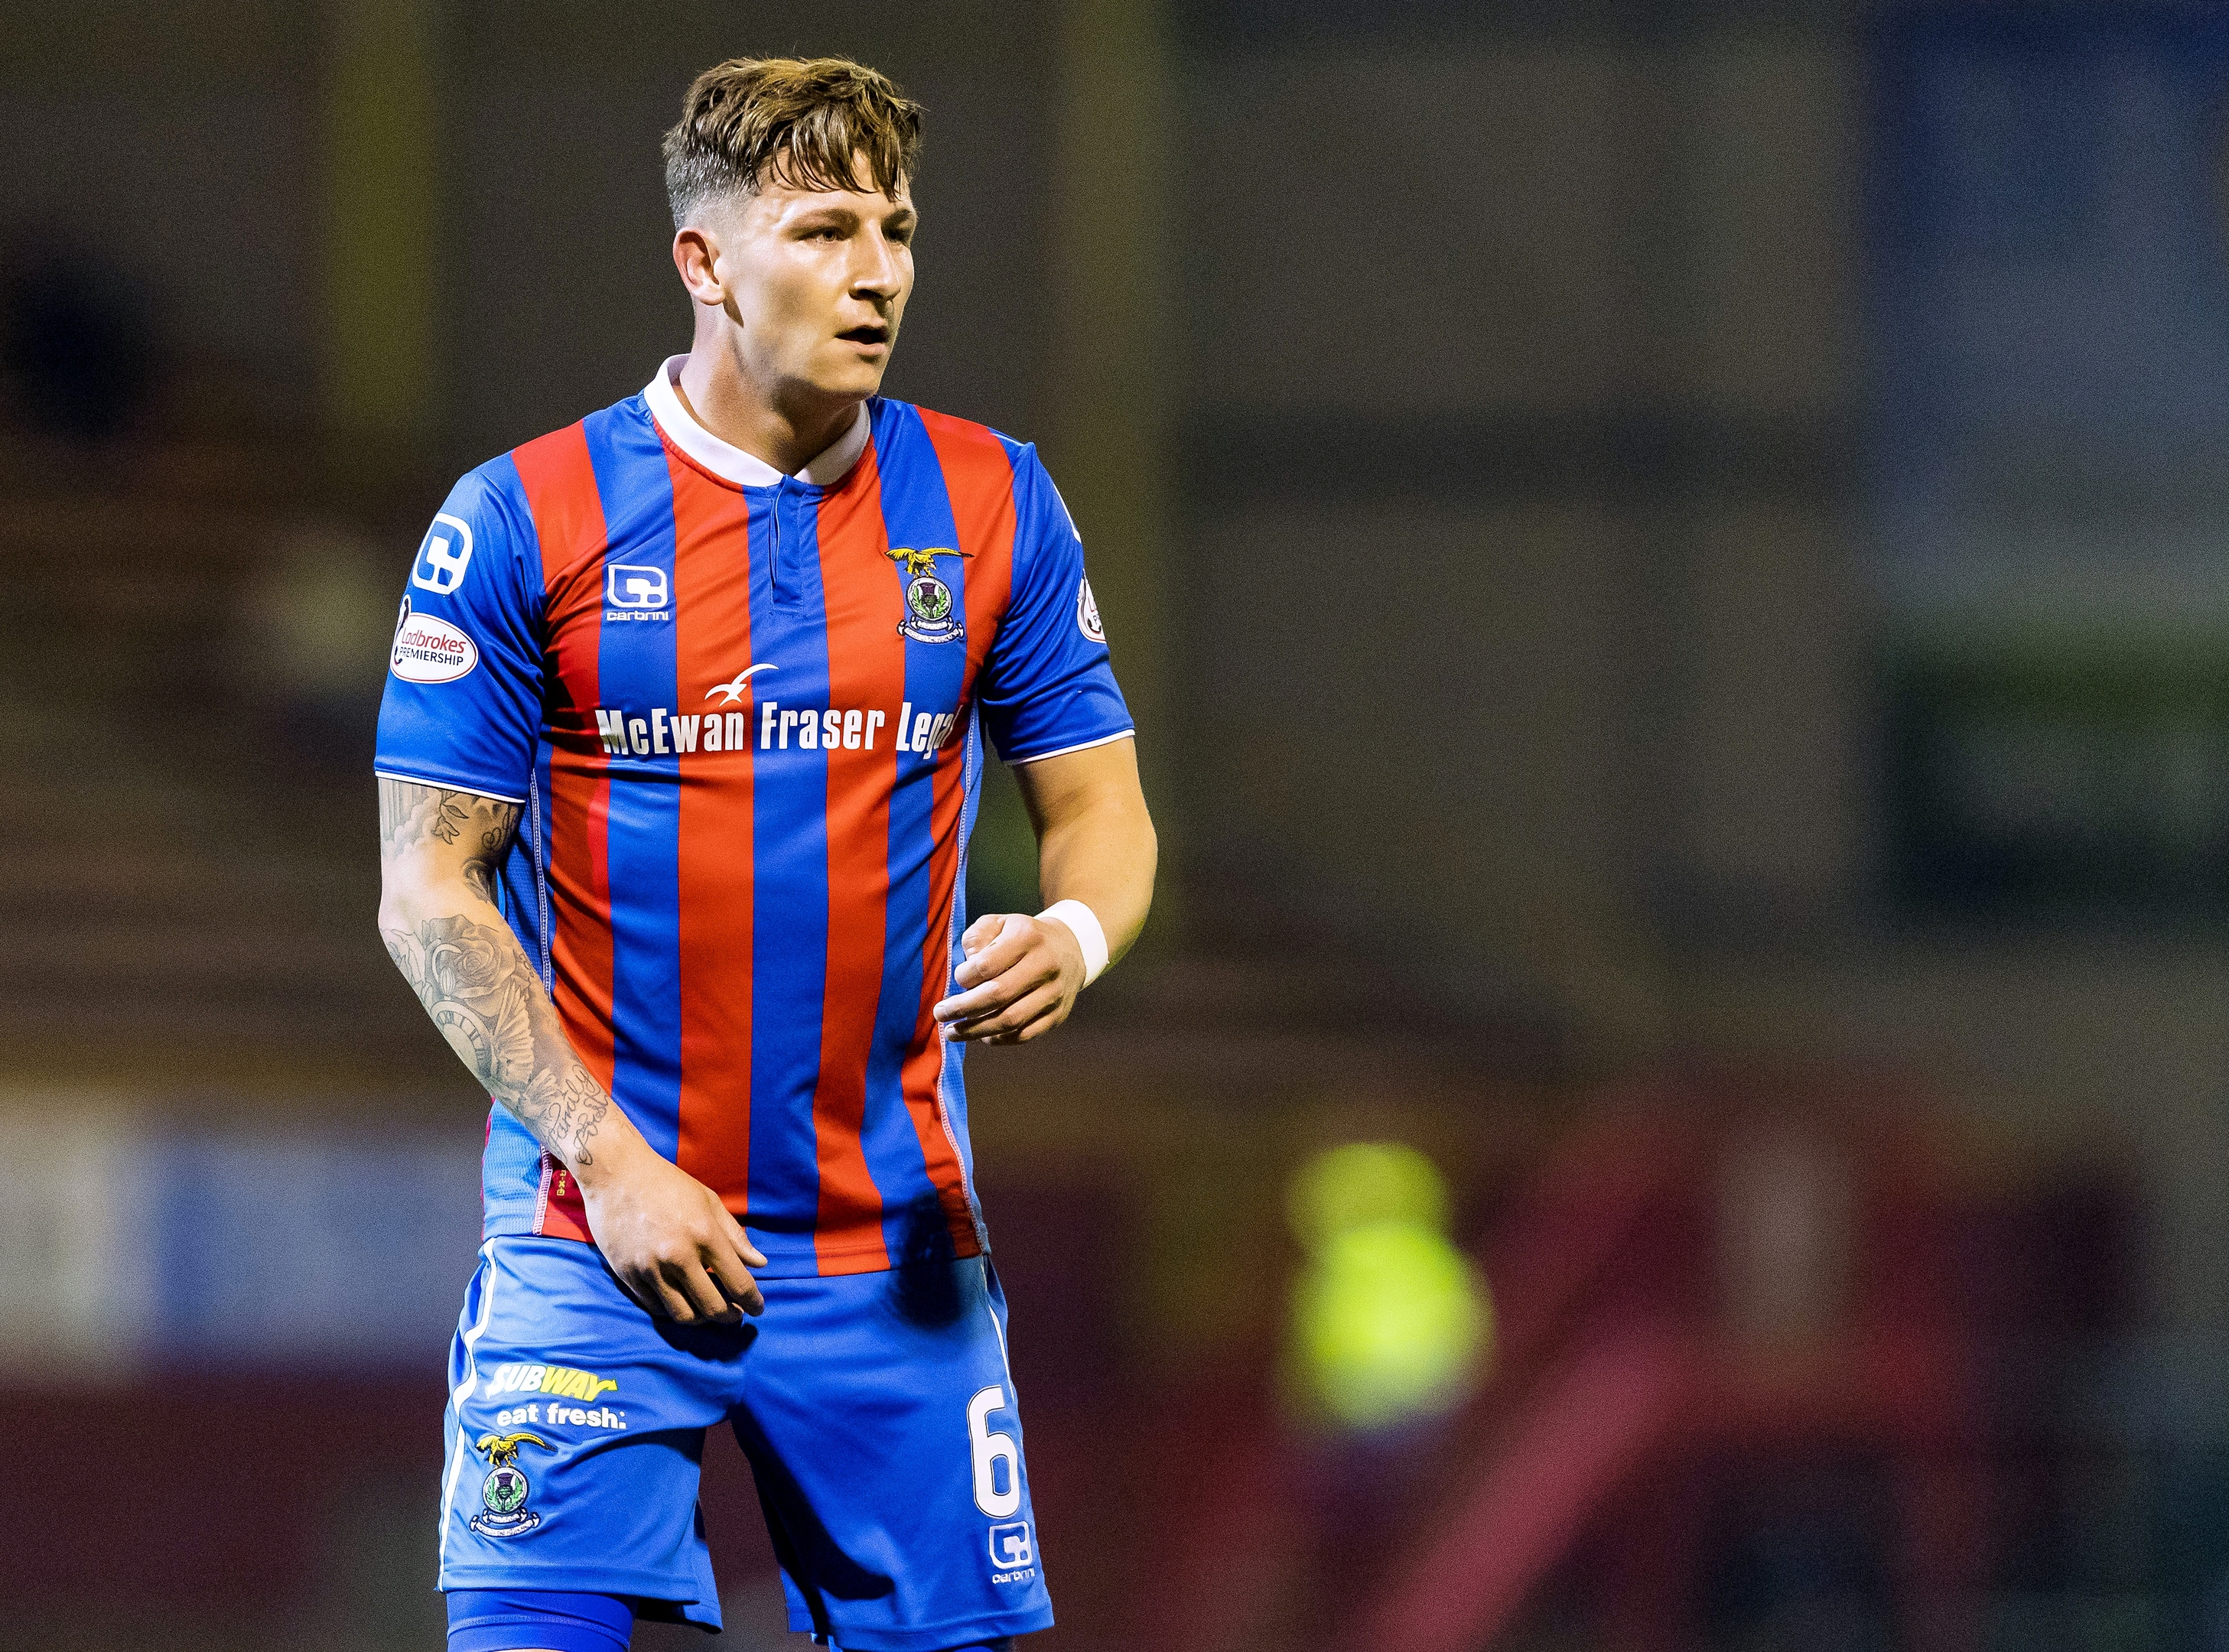 Meekings left Caley Thistle after relegation in 2017